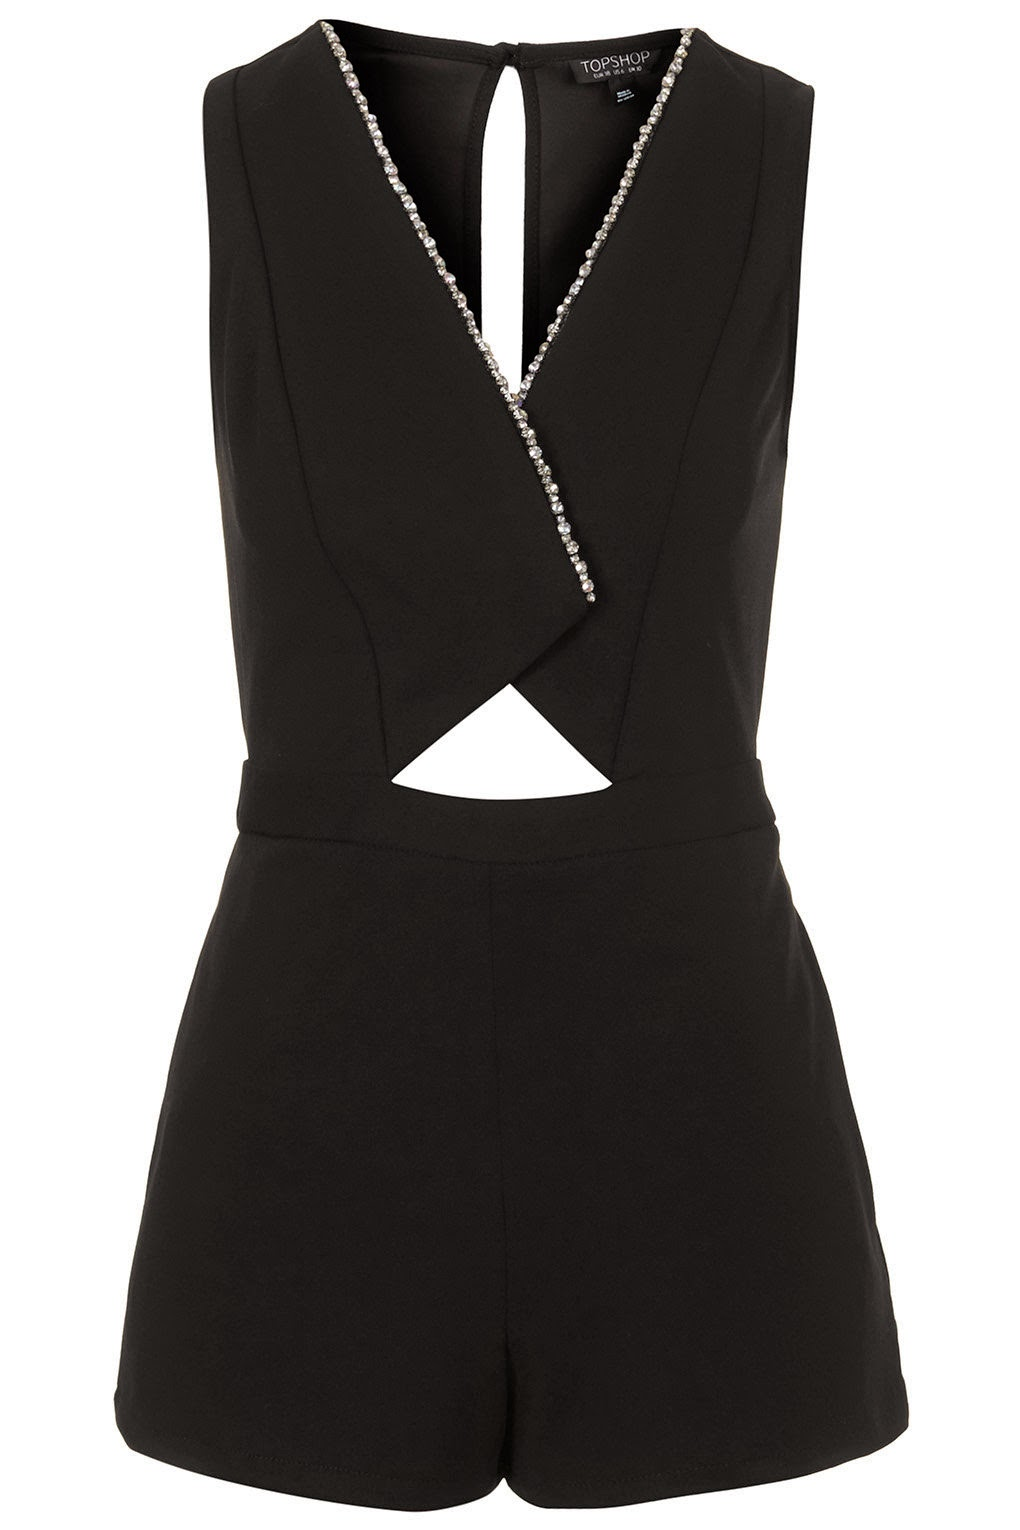 crystal playsuit, topshop black playsuit, smart black playsuit,